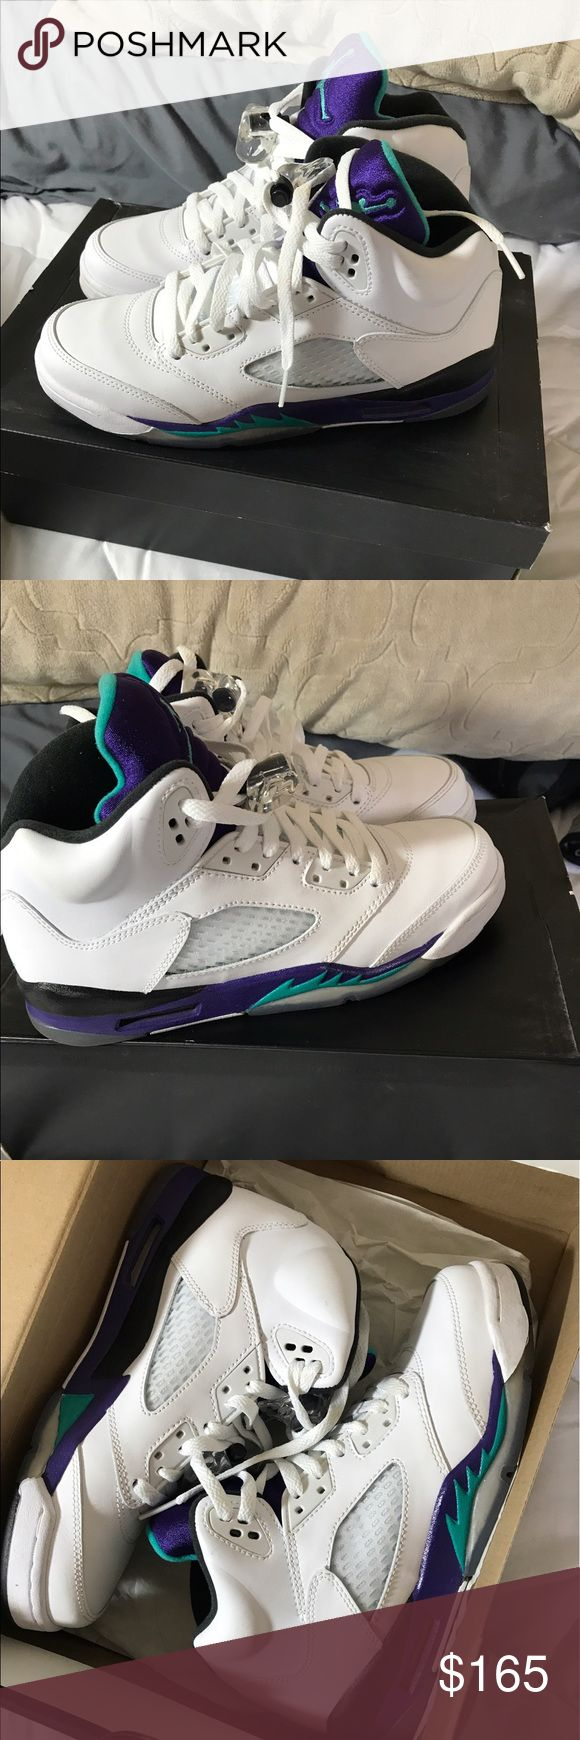 Air Jordan retro 5 emerald grape black white These are pretty hard to find. All the Jordan's I'm selling were gifted to me and I never wore them. Not really my style.. So I'm selling them Size 6.5 youth. I usually wear a 7.5 women's and these fit just the same, so I'm listing as size 7.5 even though it is kids 6.5. Jordan Shoes Sneakers